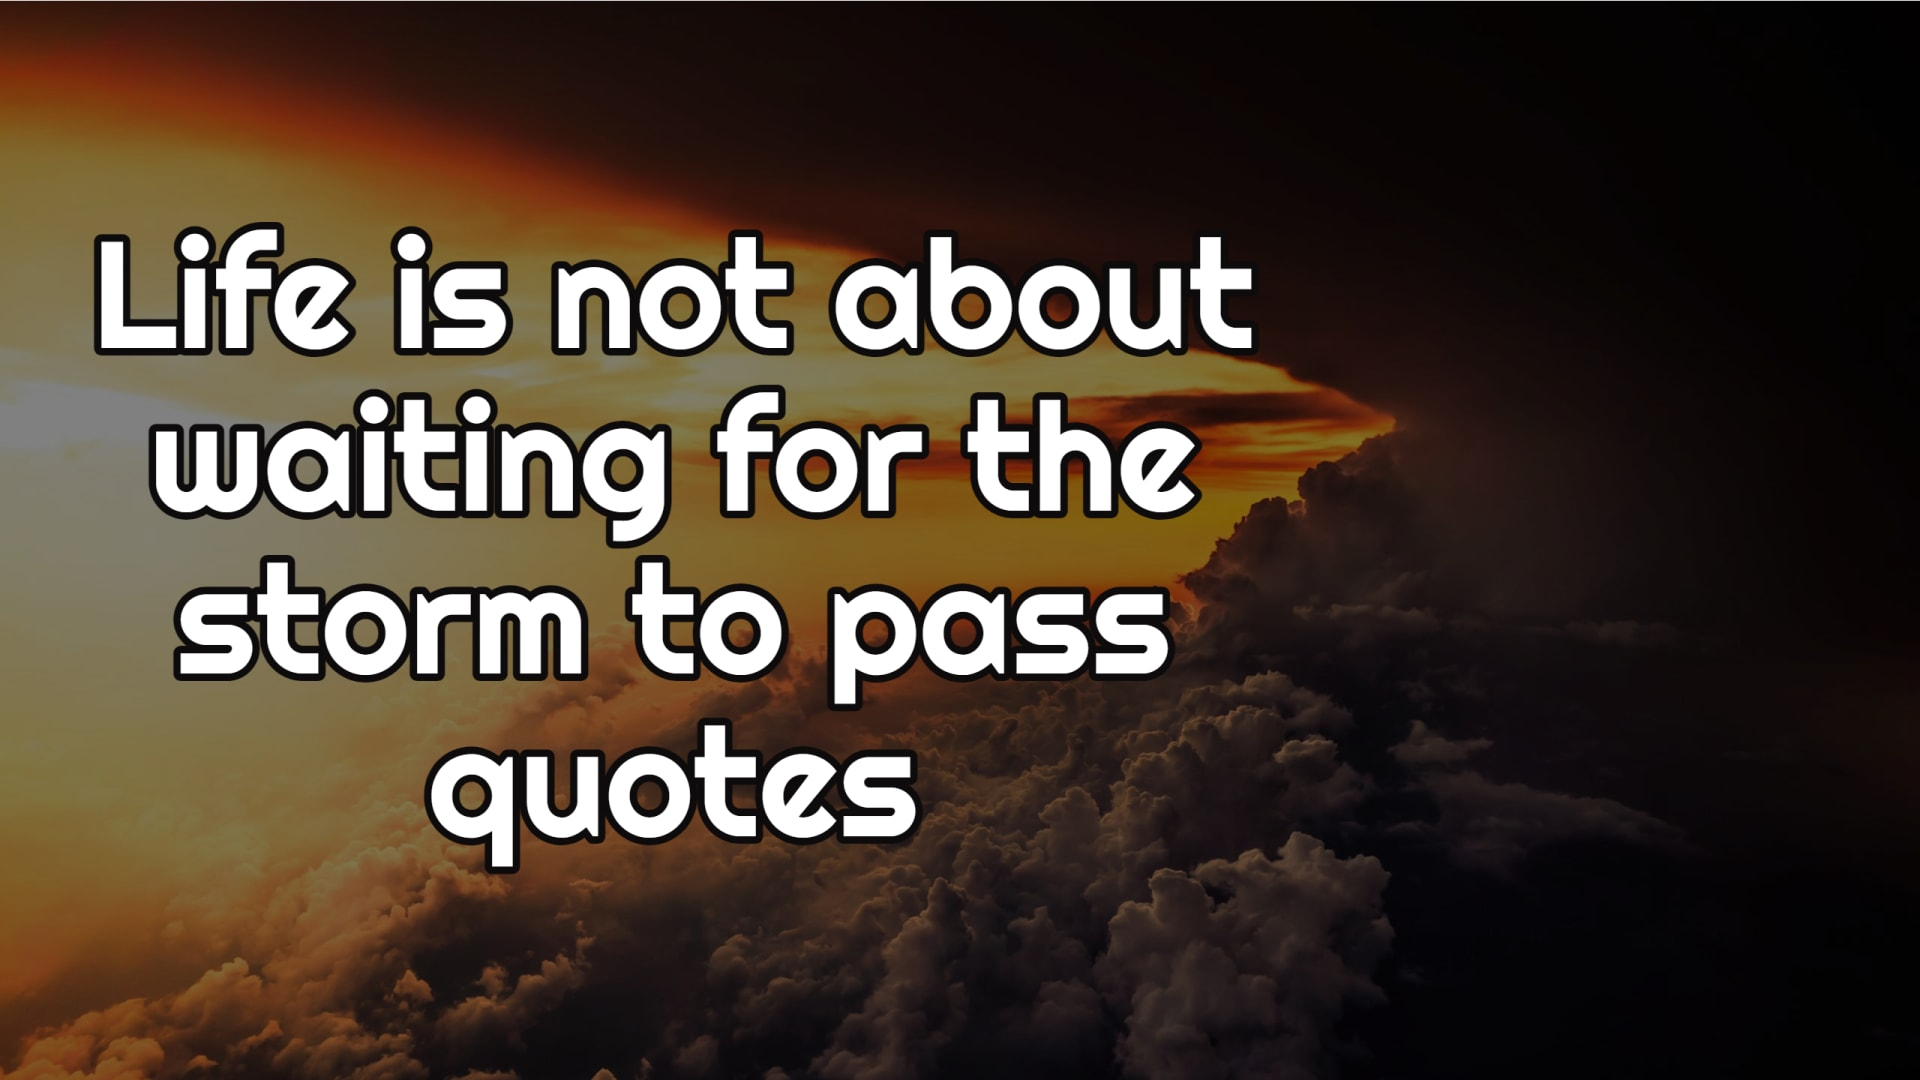 Life is not about waiting for the storm to pass quotes